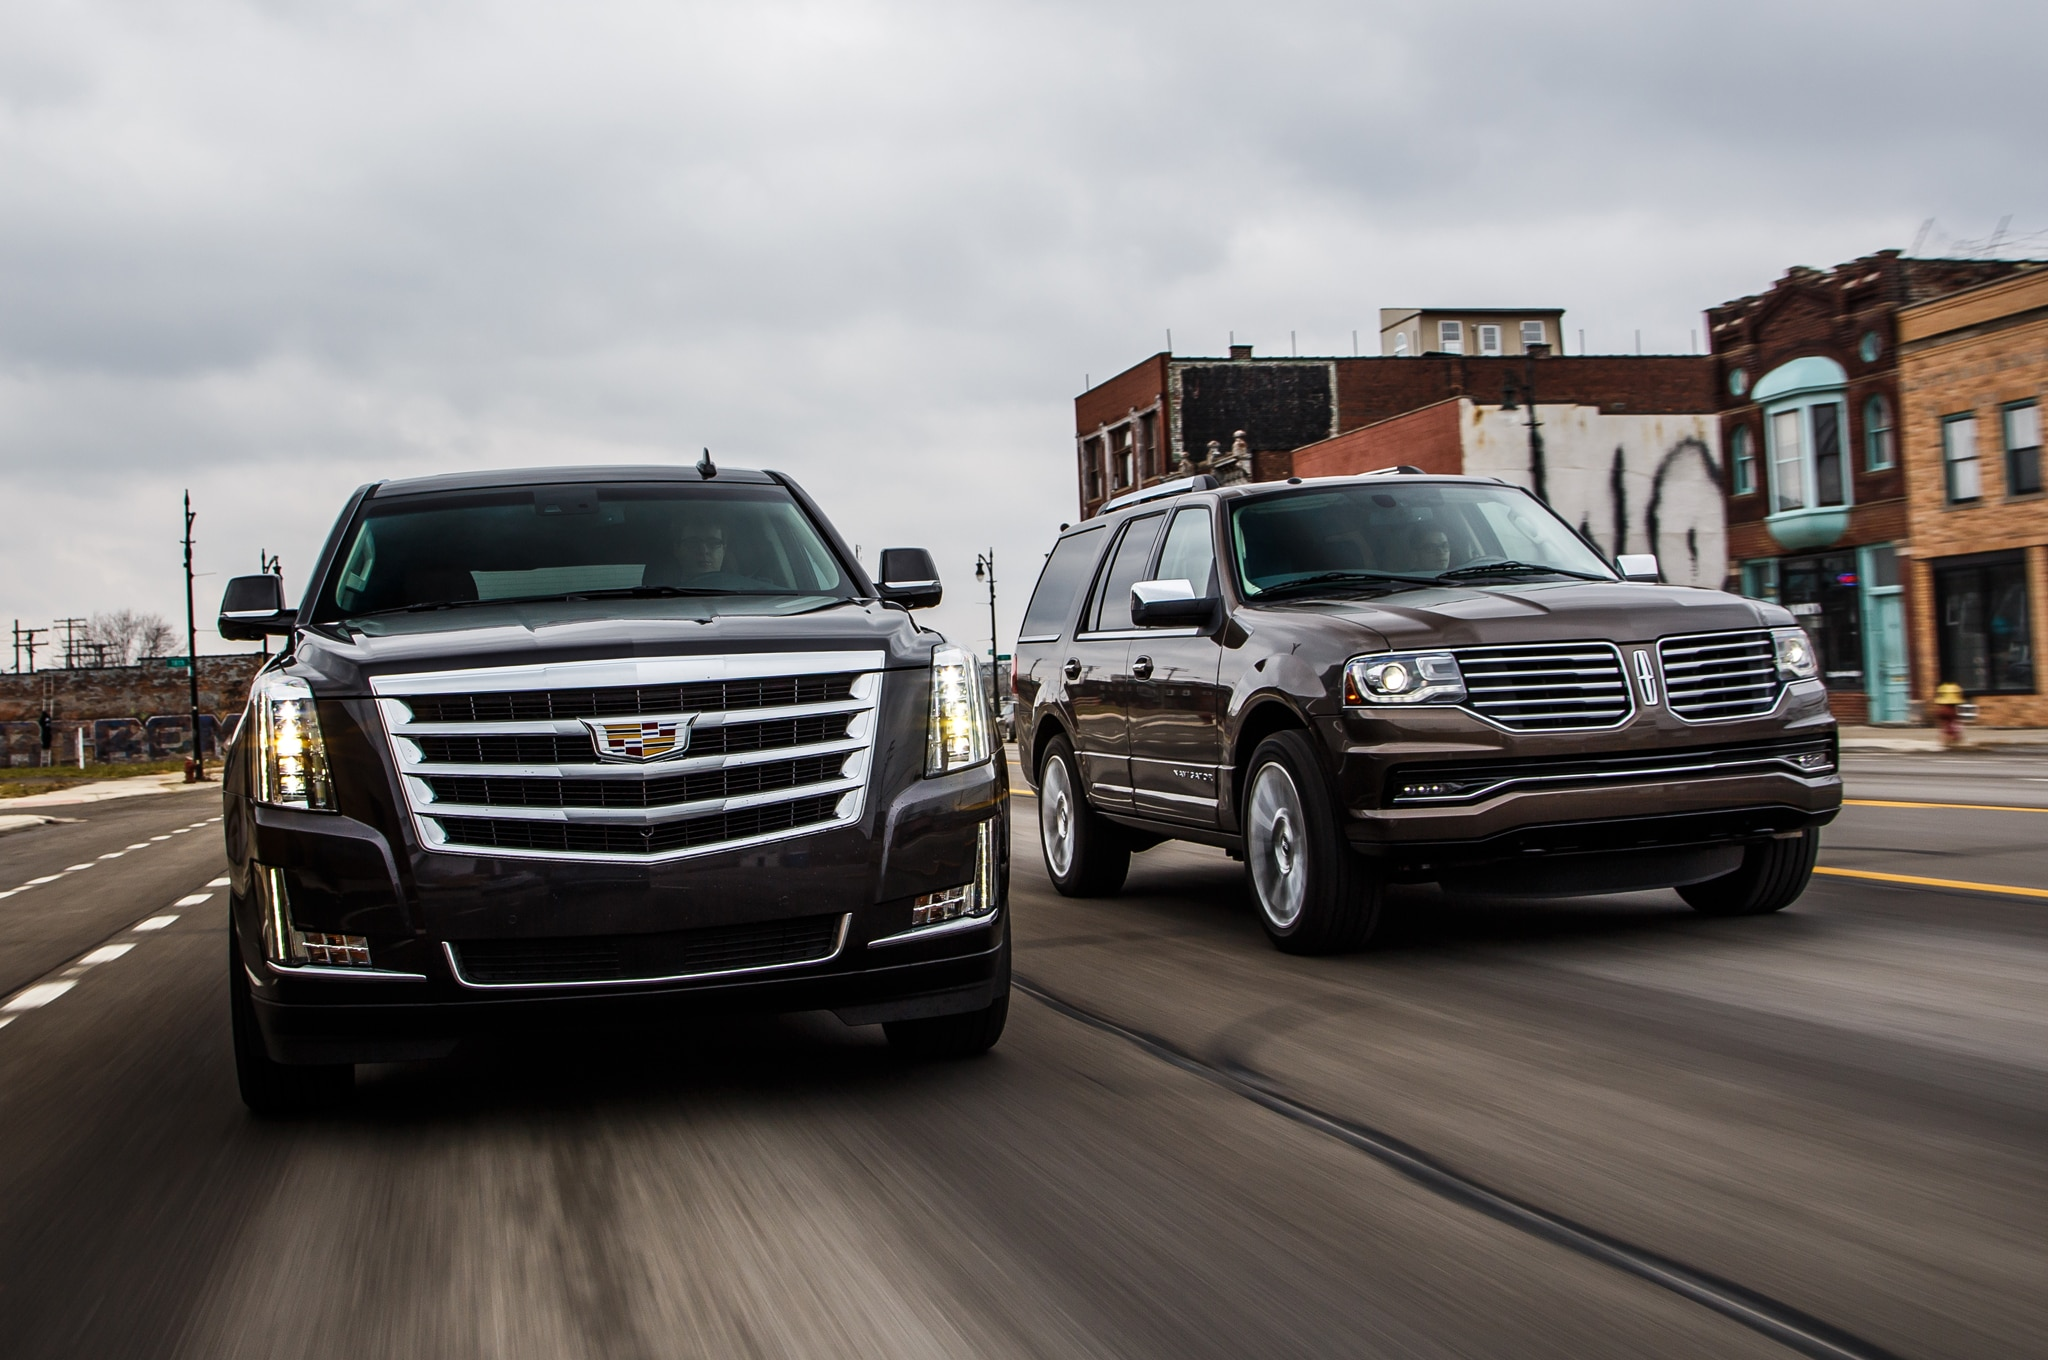 2015 Cadillac Escalade Vs 2015 Lincoln Navigator on 2015 lexus is awd